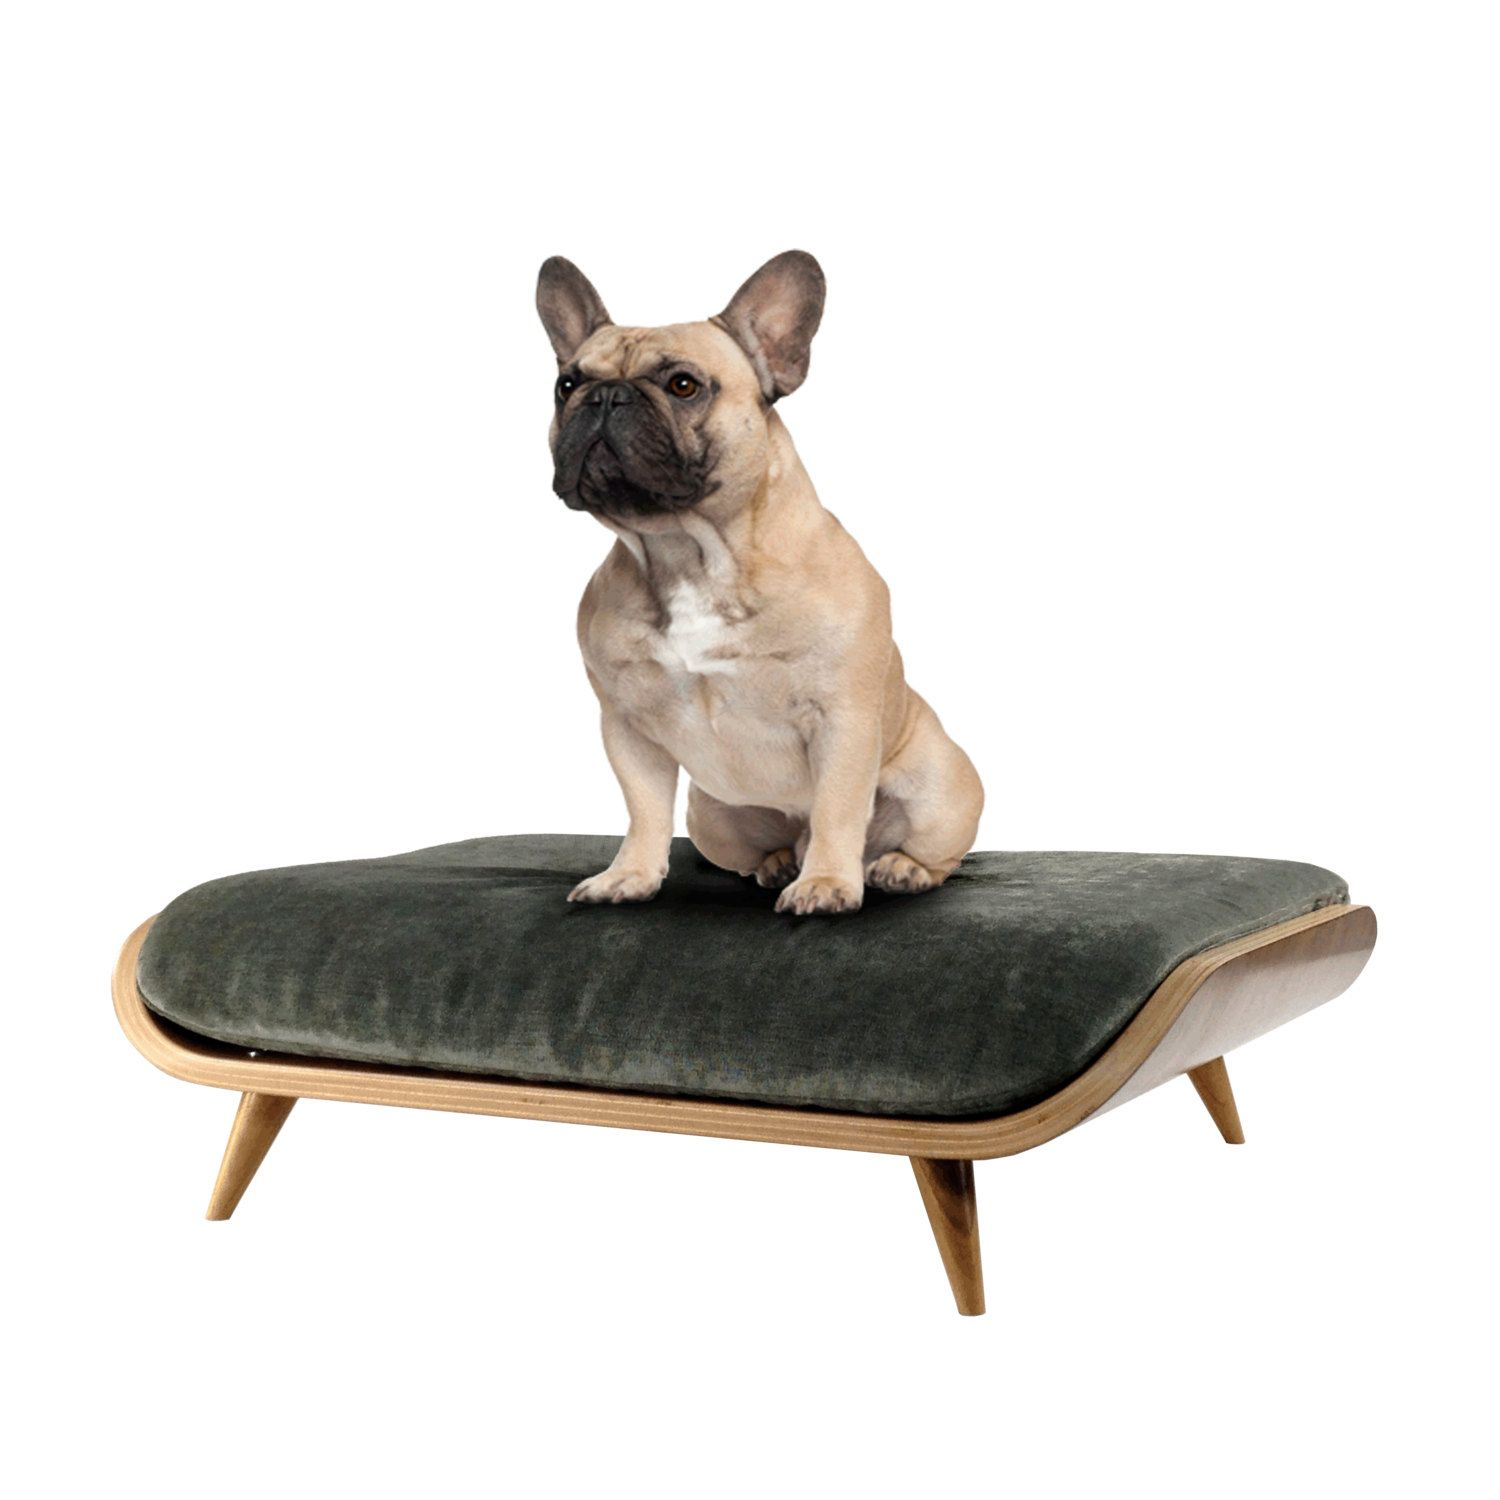 Midcentury Modern Dog Bed By Cairudesign On Etsy 255 00 With